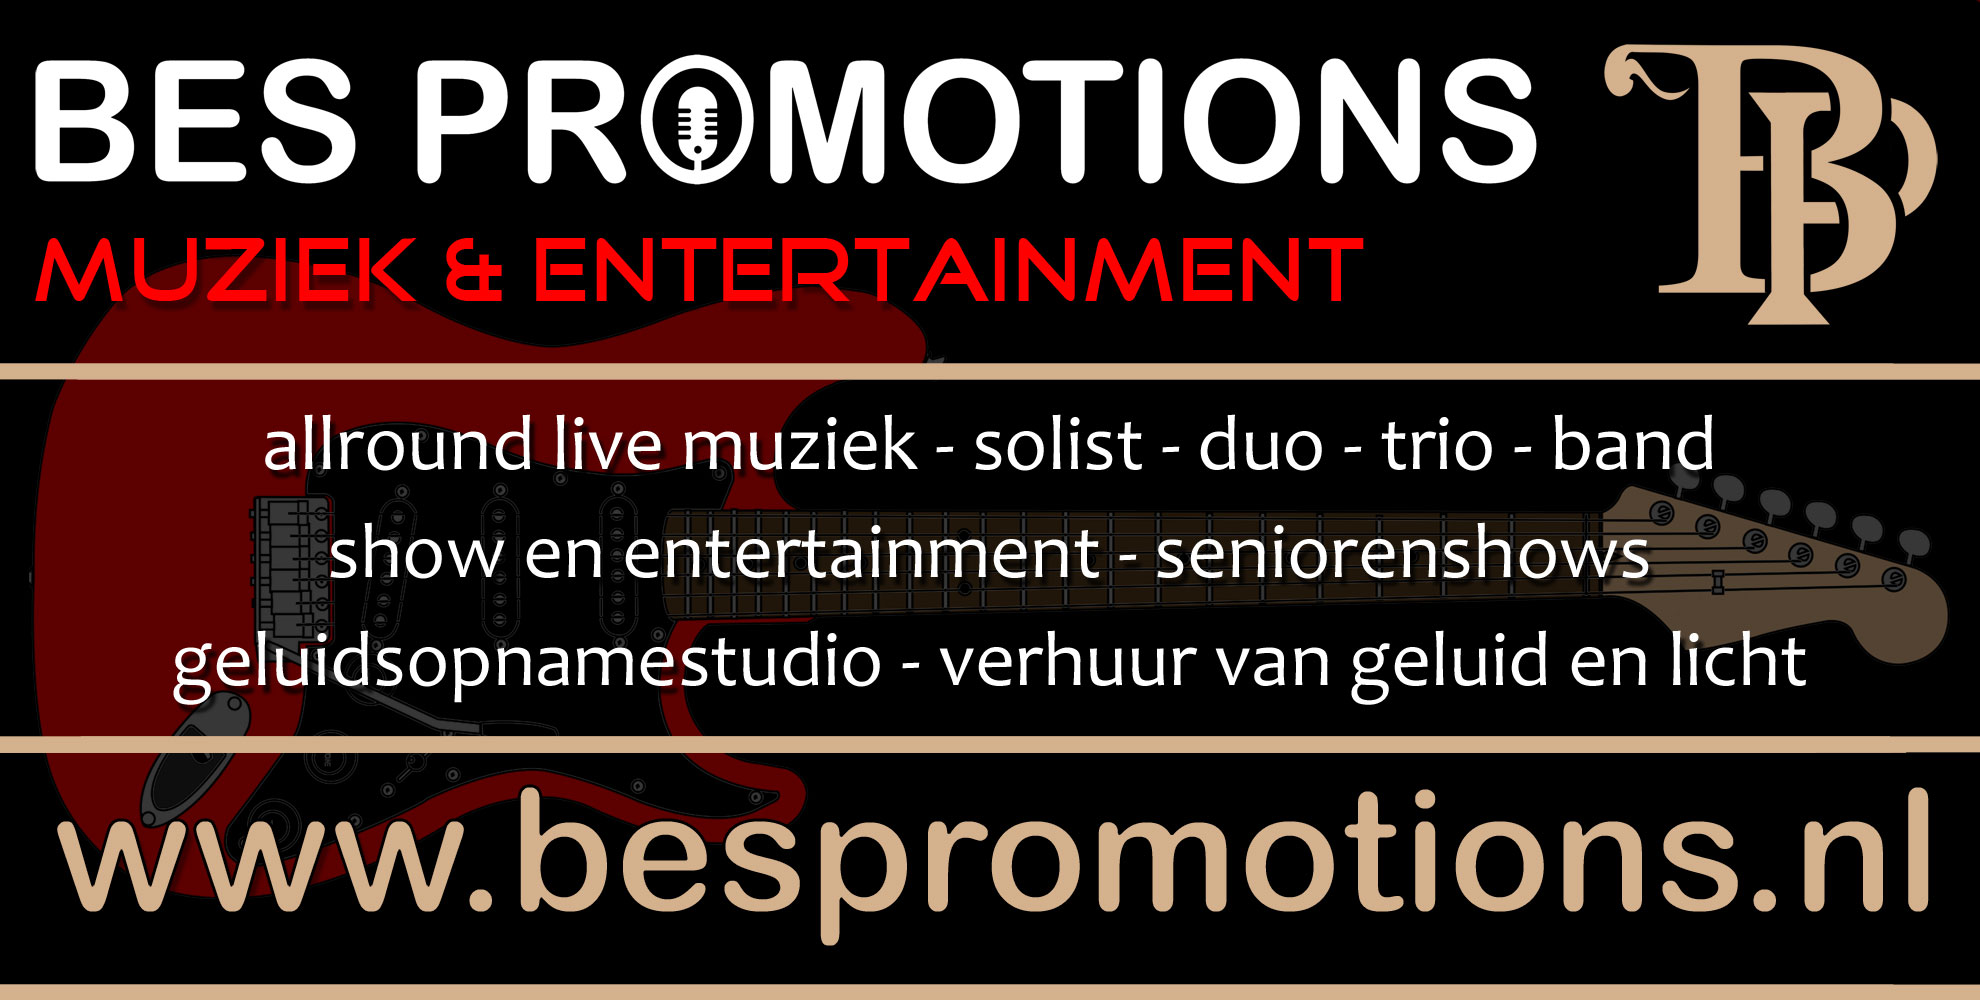 Bes Promotions Muziek & Entertainment